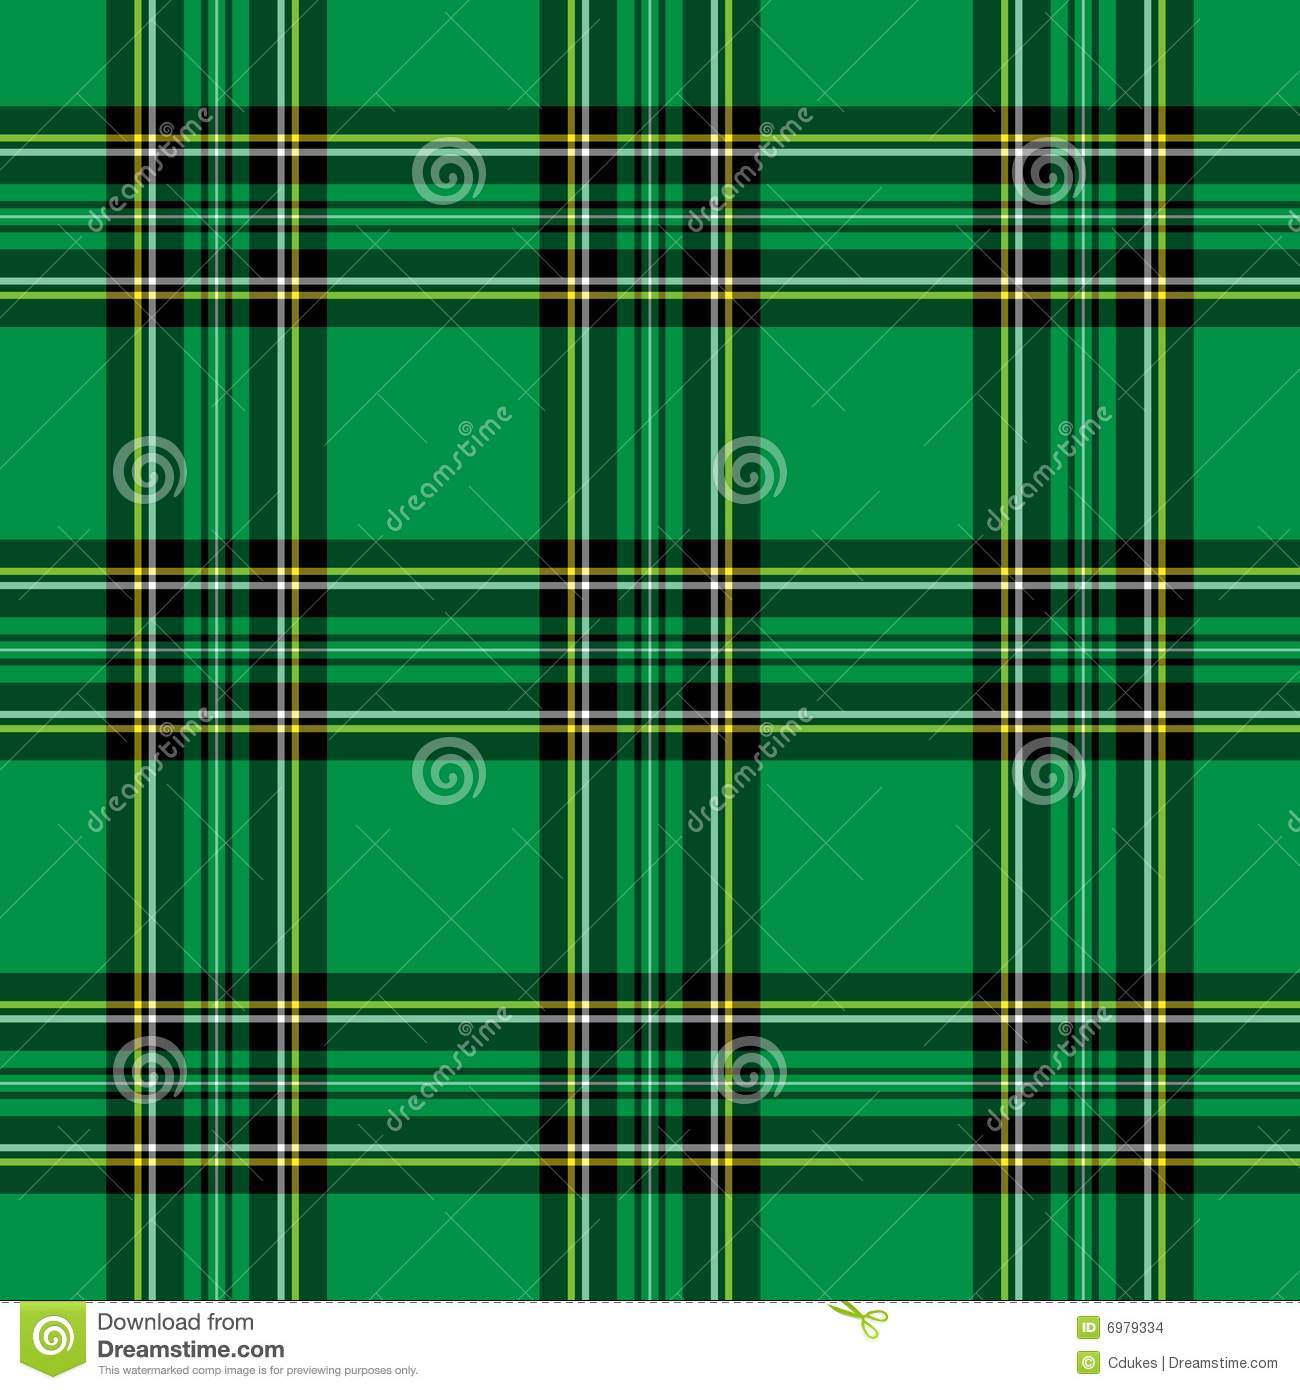 green plaid pattern stock illustration illustration of woven 6979334. Black Bedroom Furniture Sets. Home Design Ideas